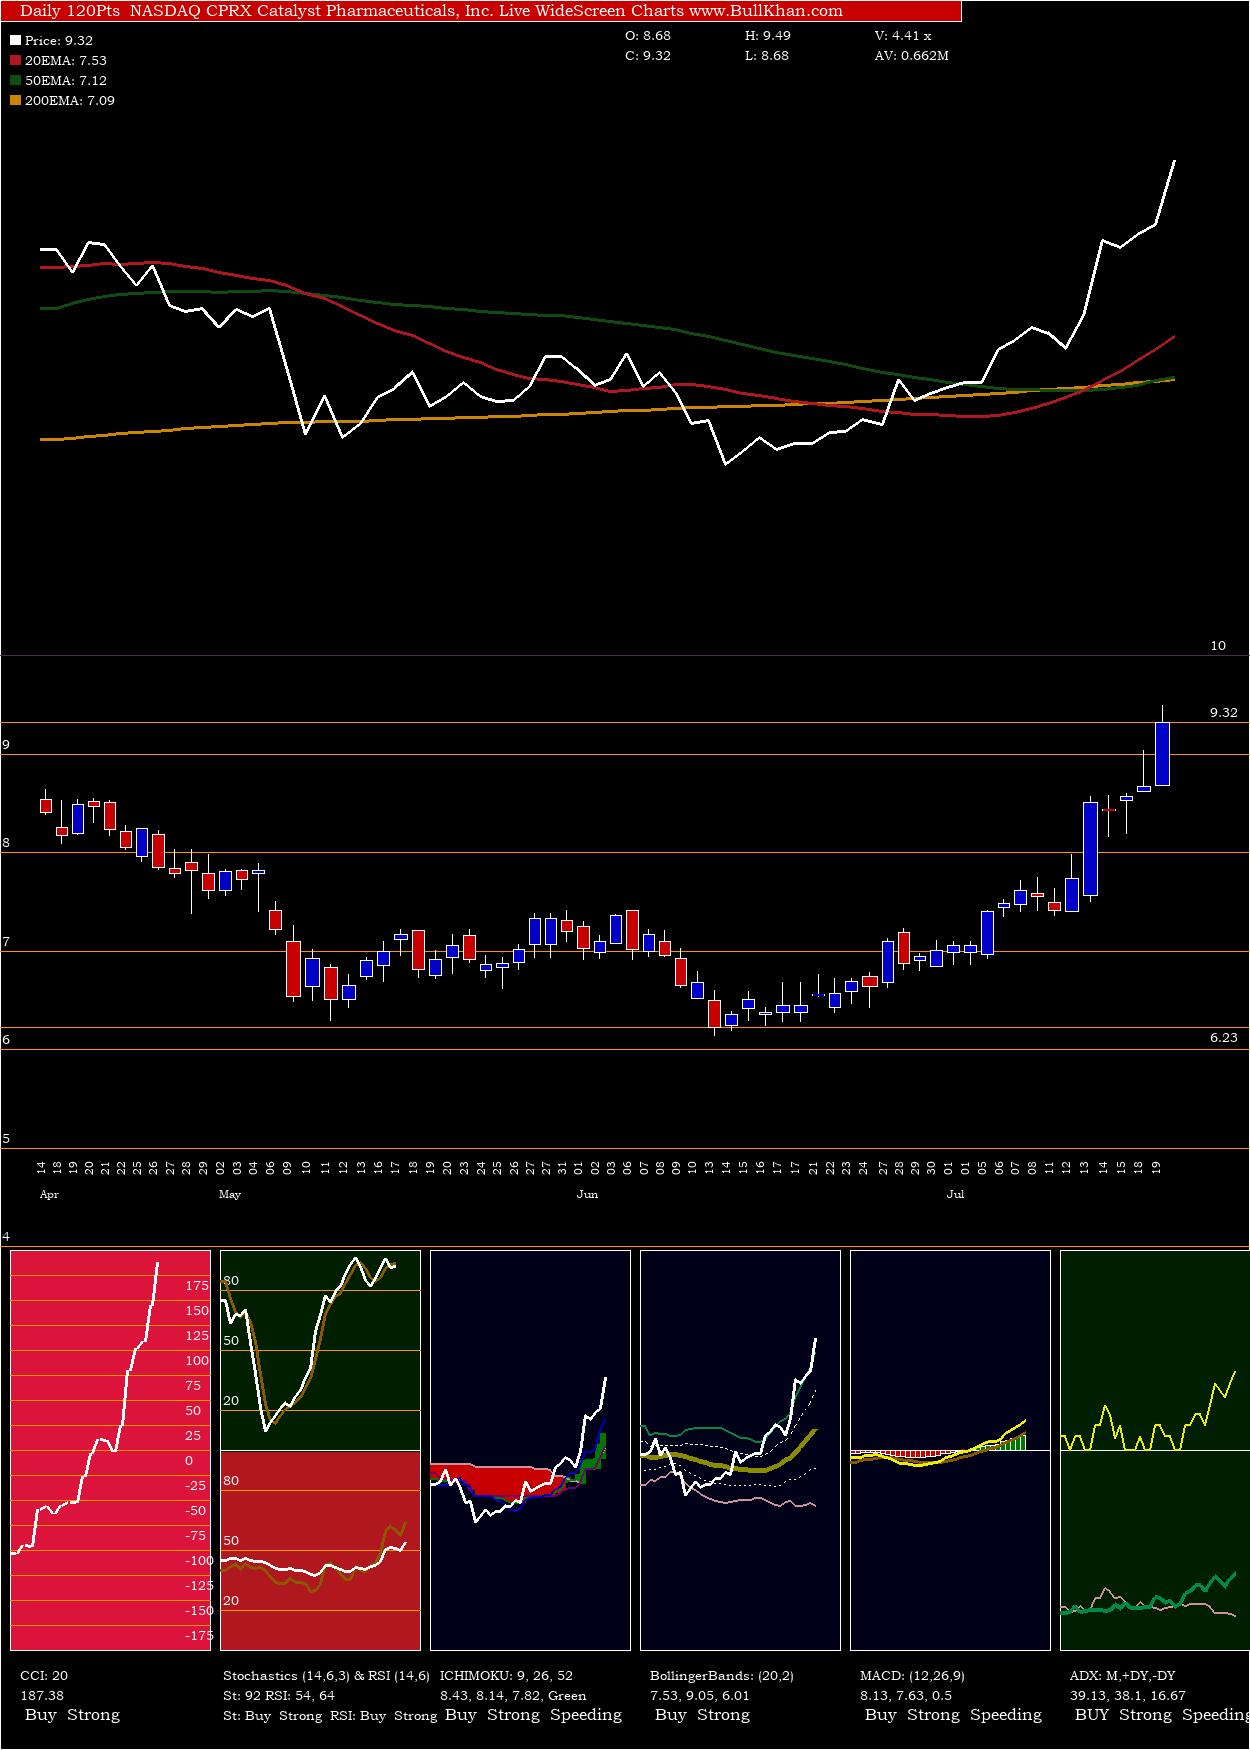 Catalyst Pharmaceuticals charts and indicators